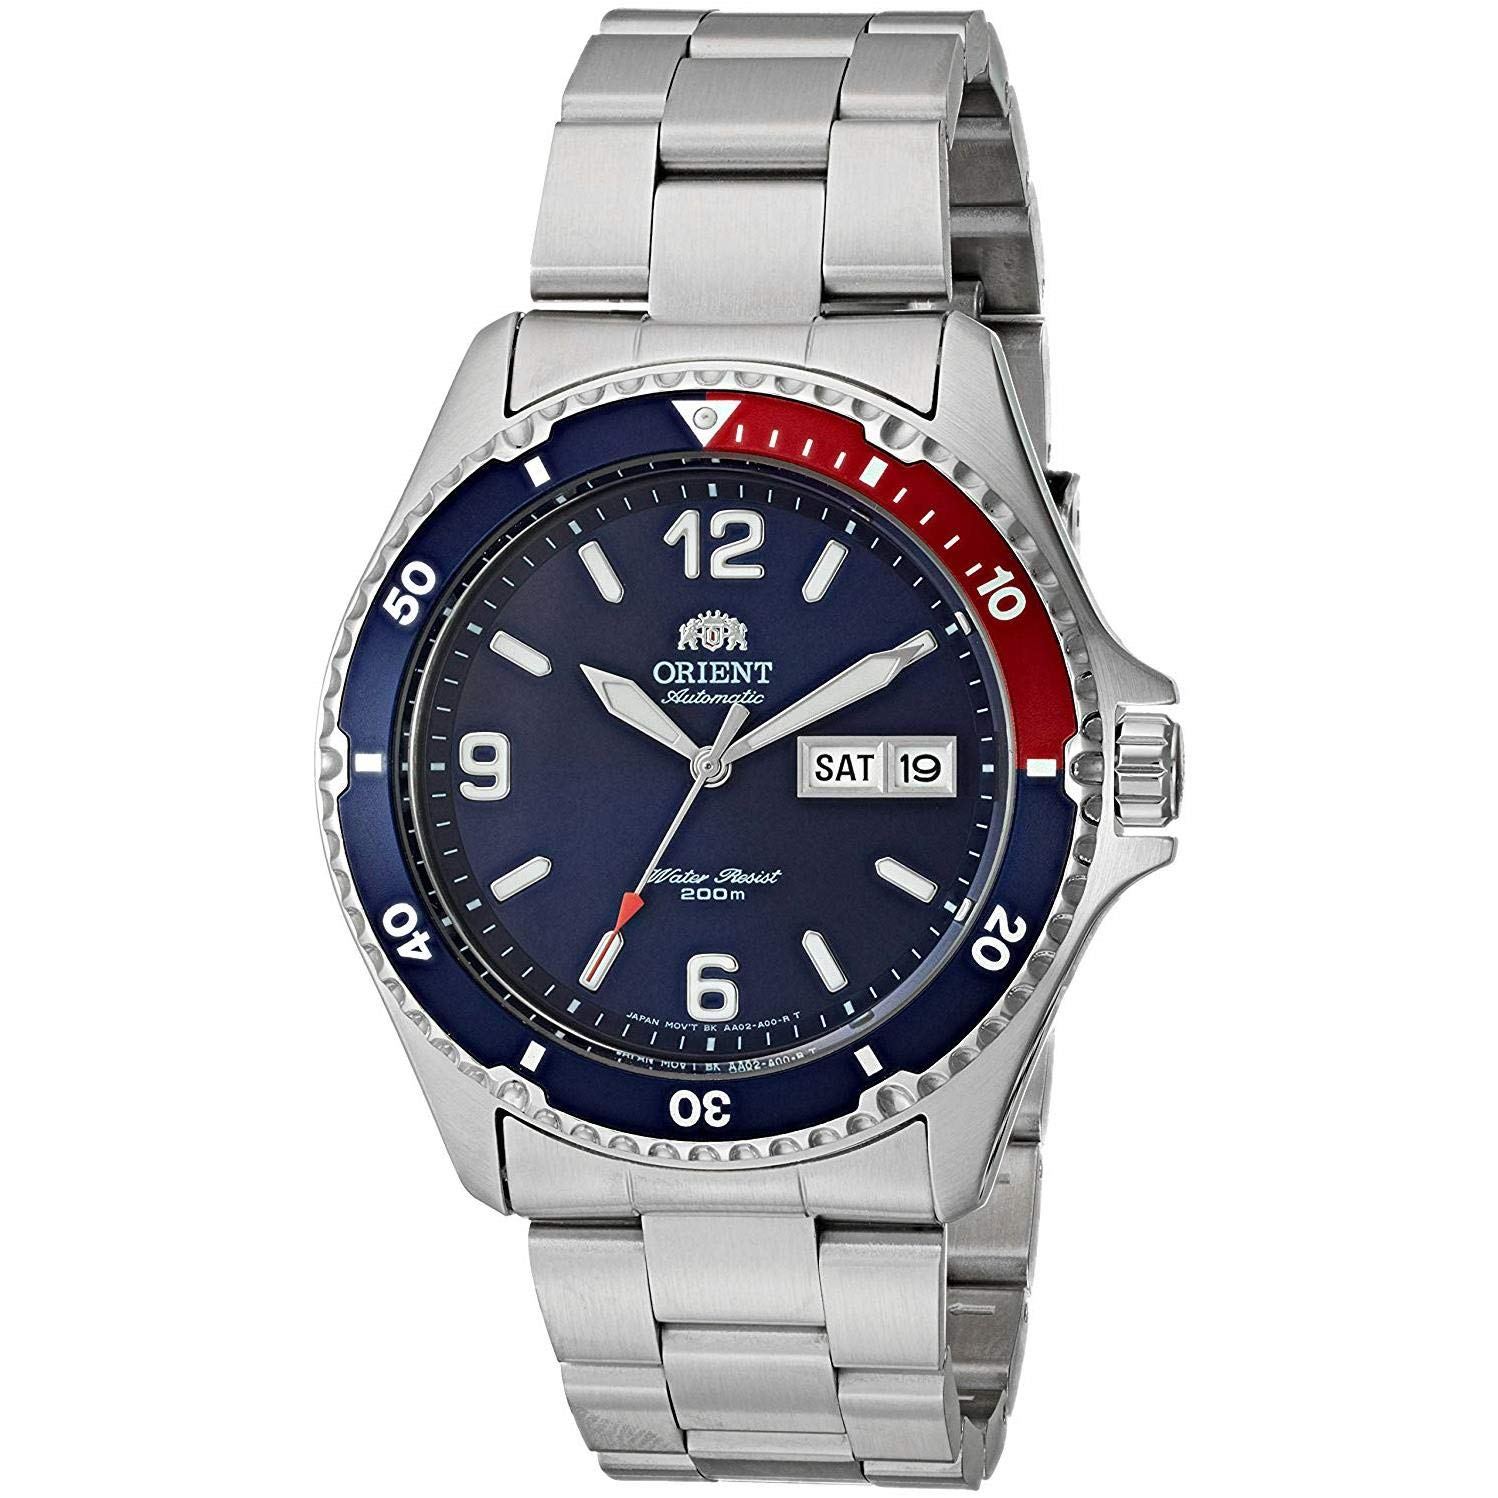 Orient Men's Mako II Japanese-Automatic Watch with Stainless-Steel Strap, Silver, 22 (Model: FAA02009D9) by Orient